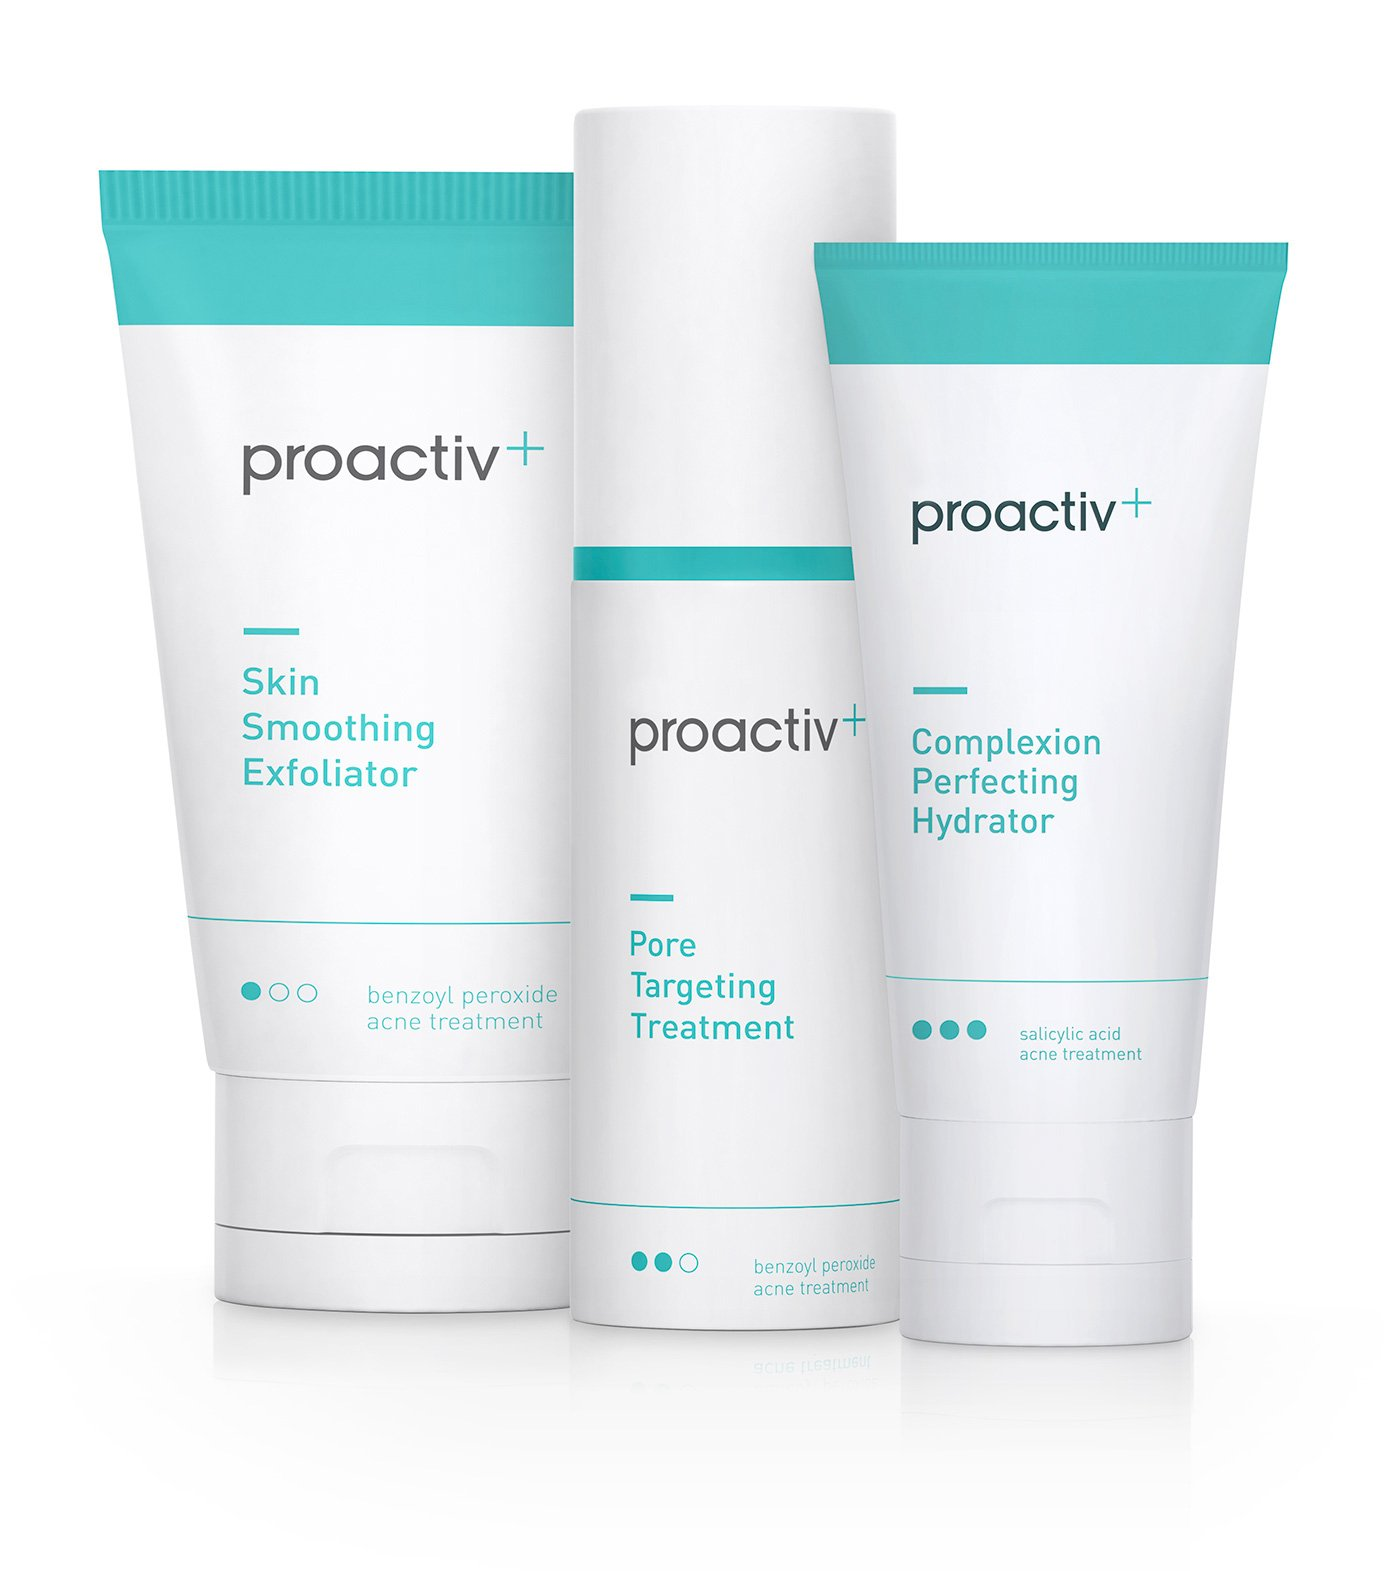 Proactiv+ 3-Step Acne Treatment System (30 Day) by Proactiv